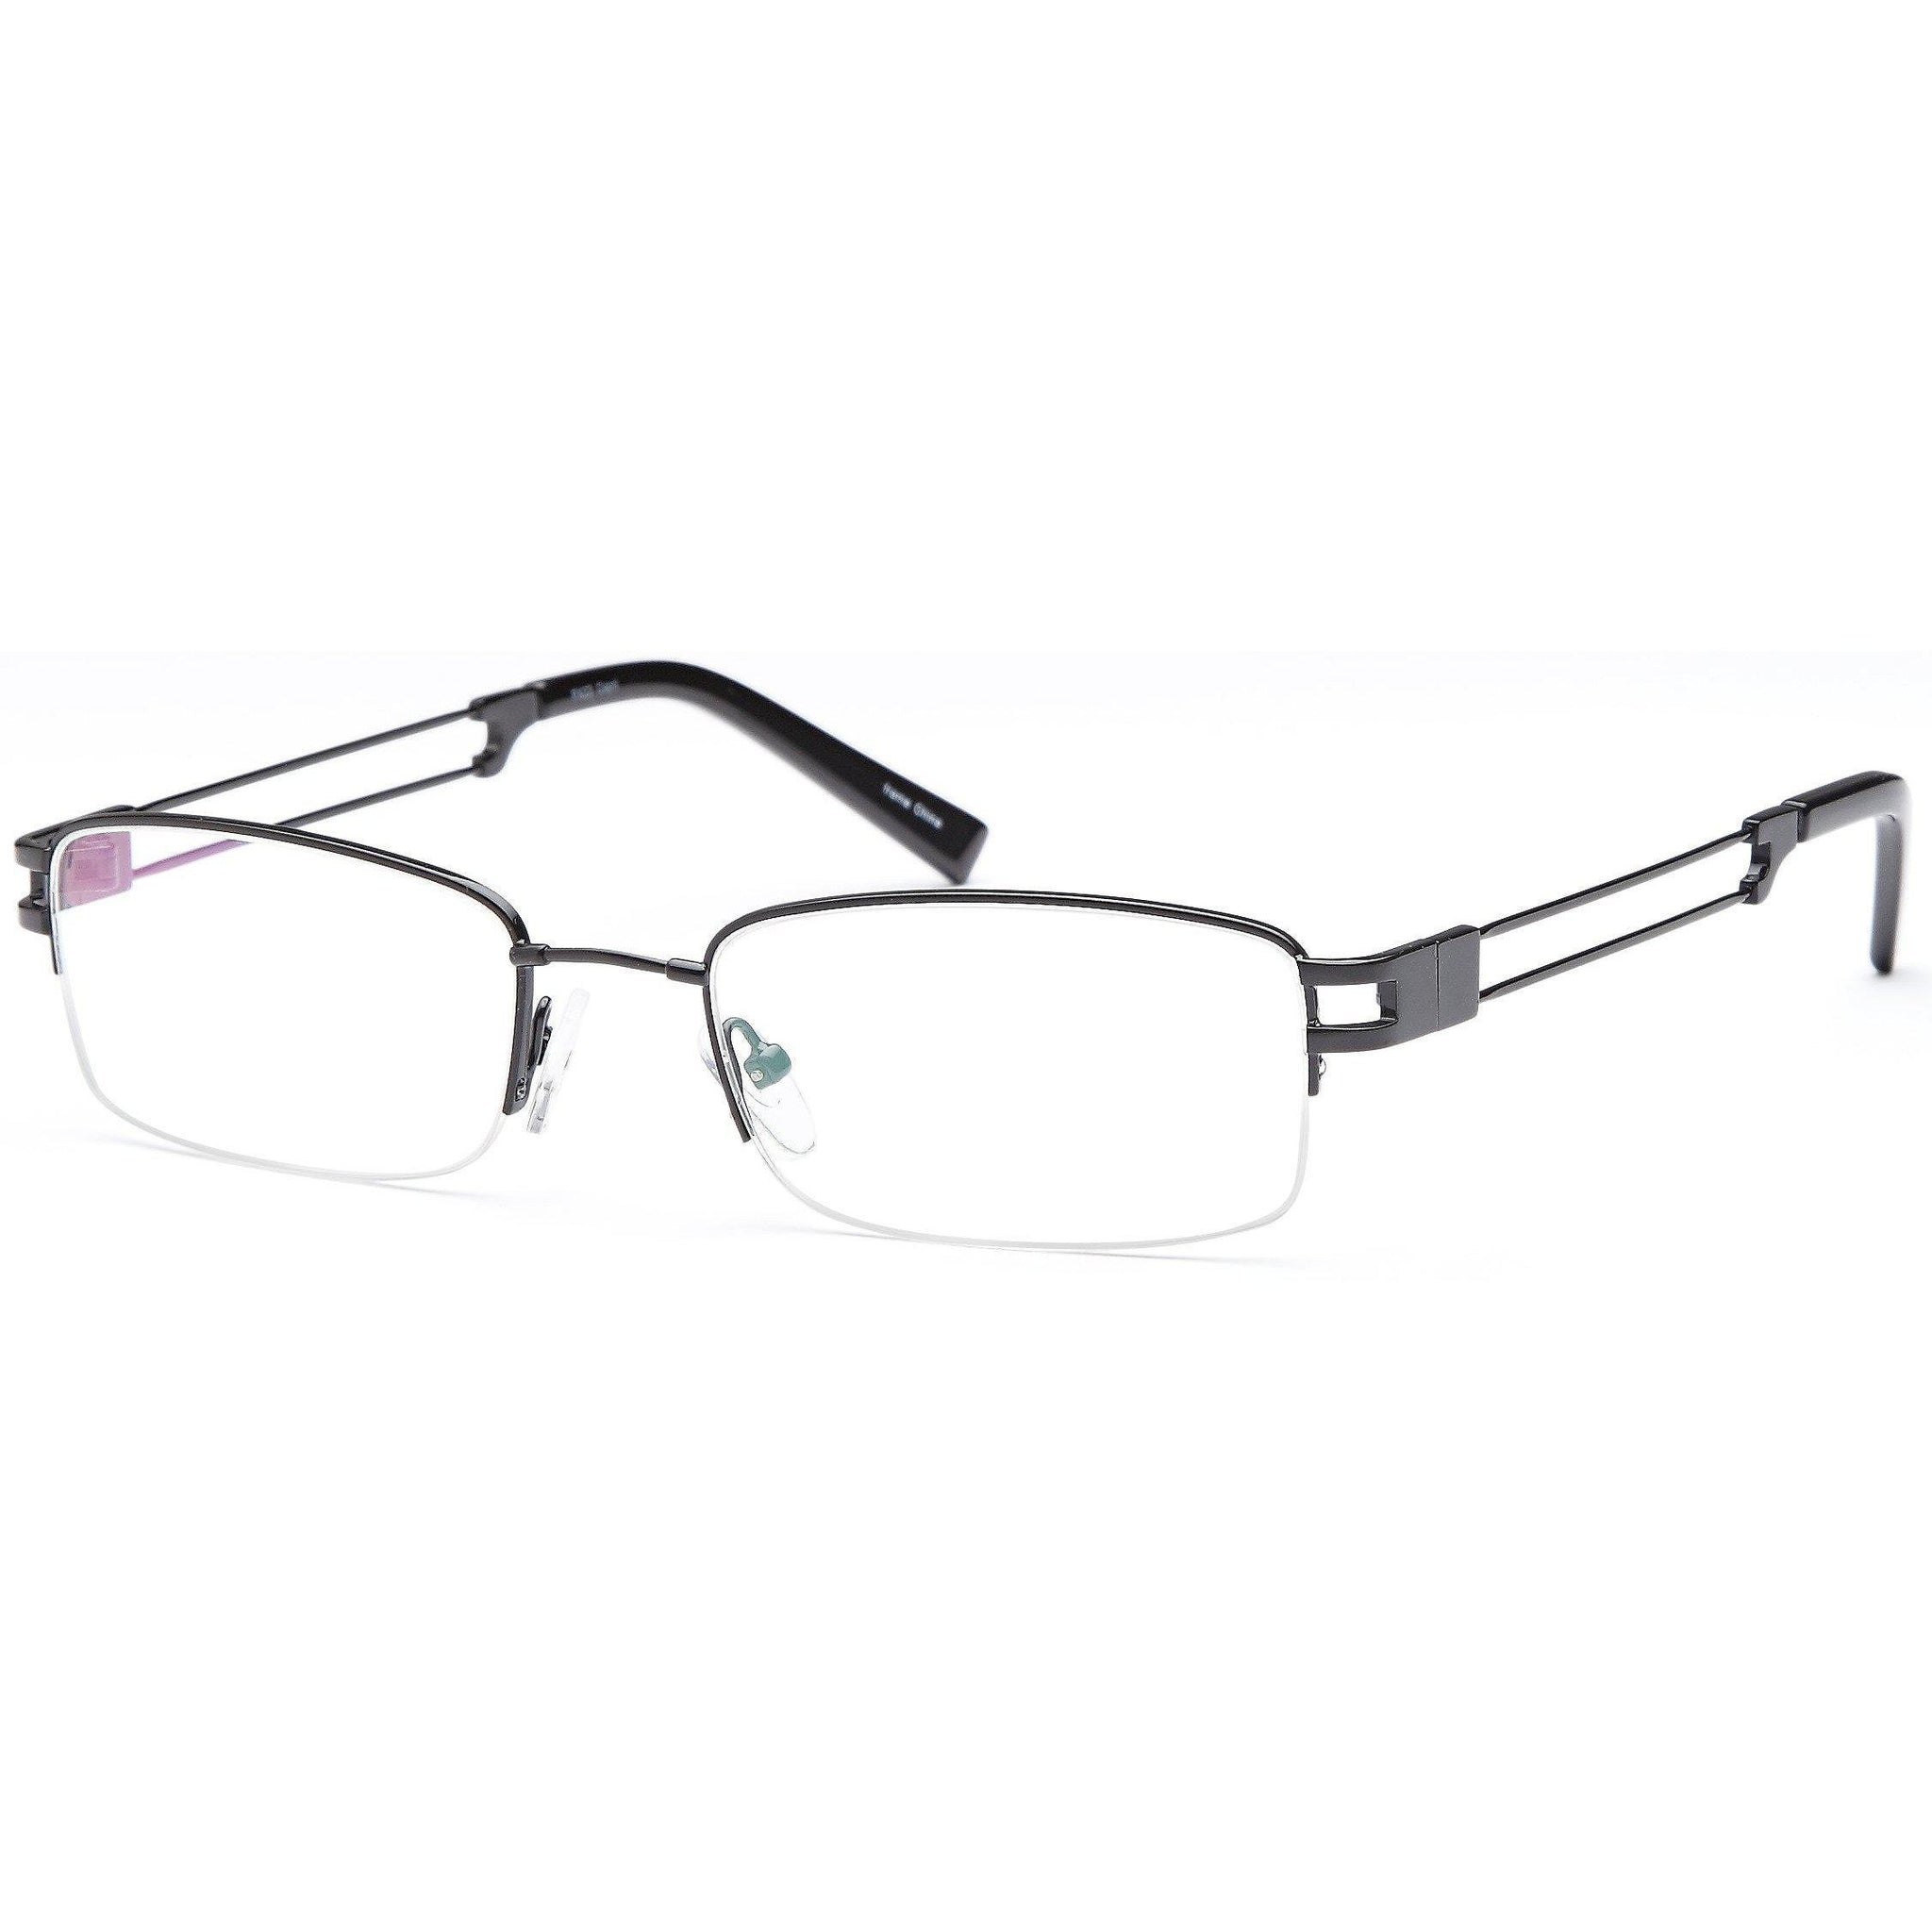 Titanium Prescription Glasses FX 22 Eyeglasses Frame